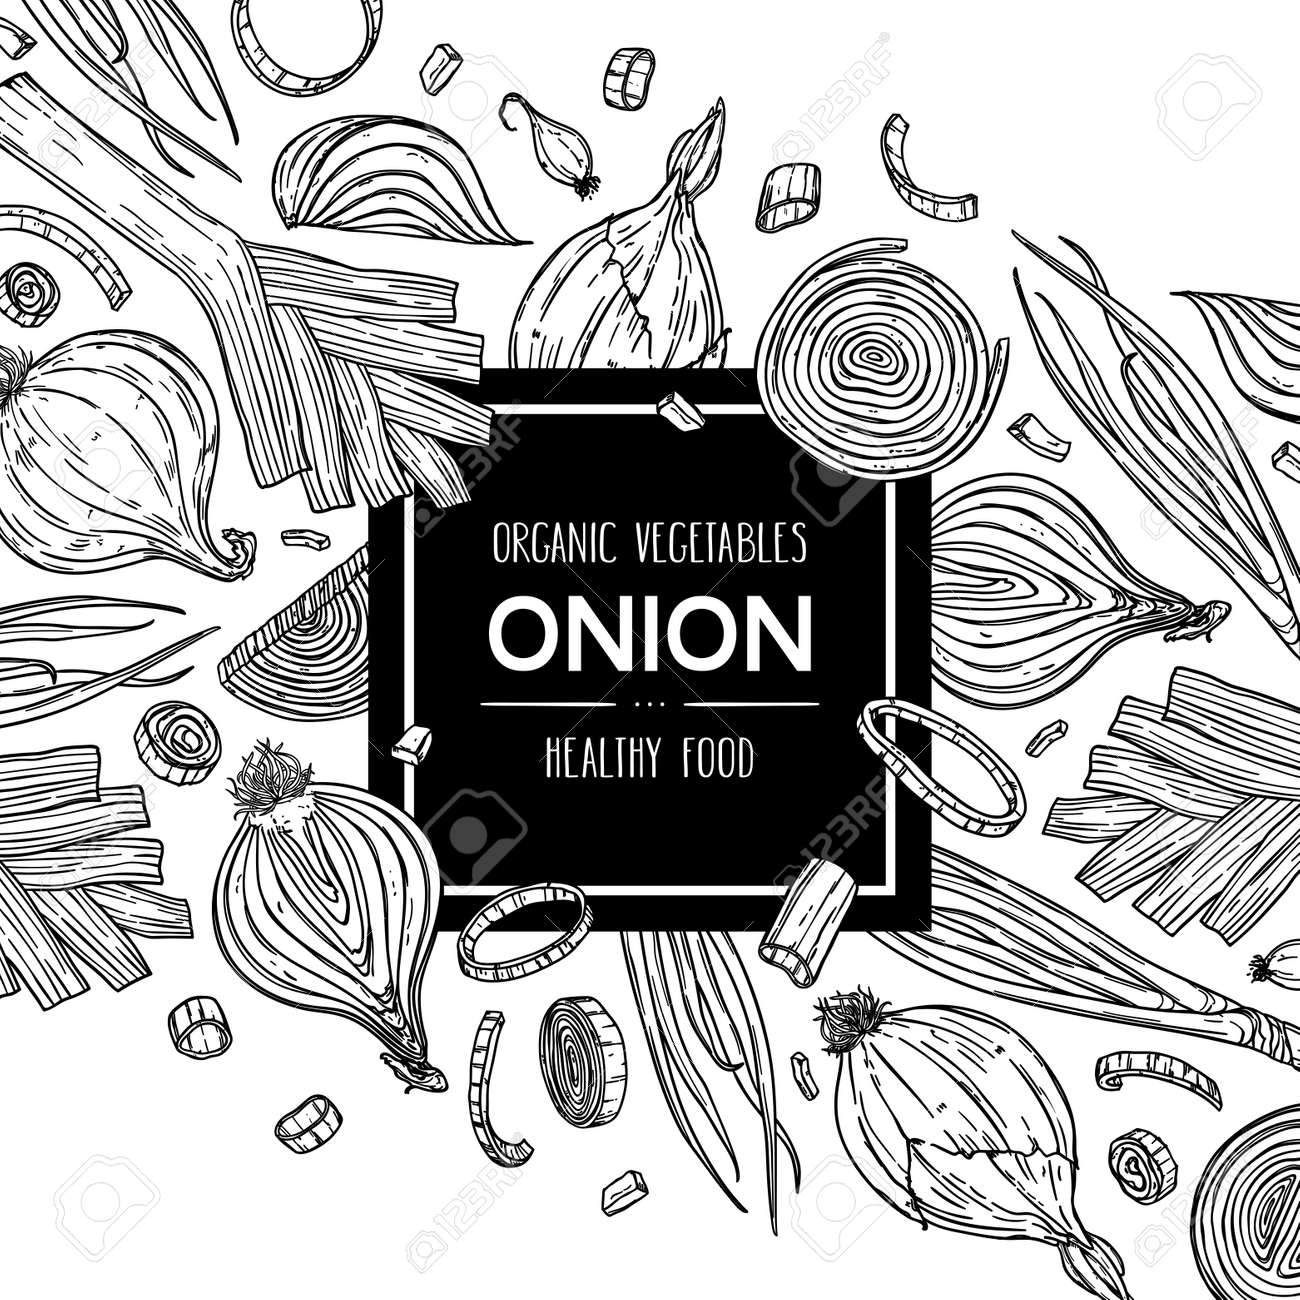 Vector hand drawn background with natural onion bulb, slices, halves, pieces, green onion and leek. Outline ink style illustration. - 168597348